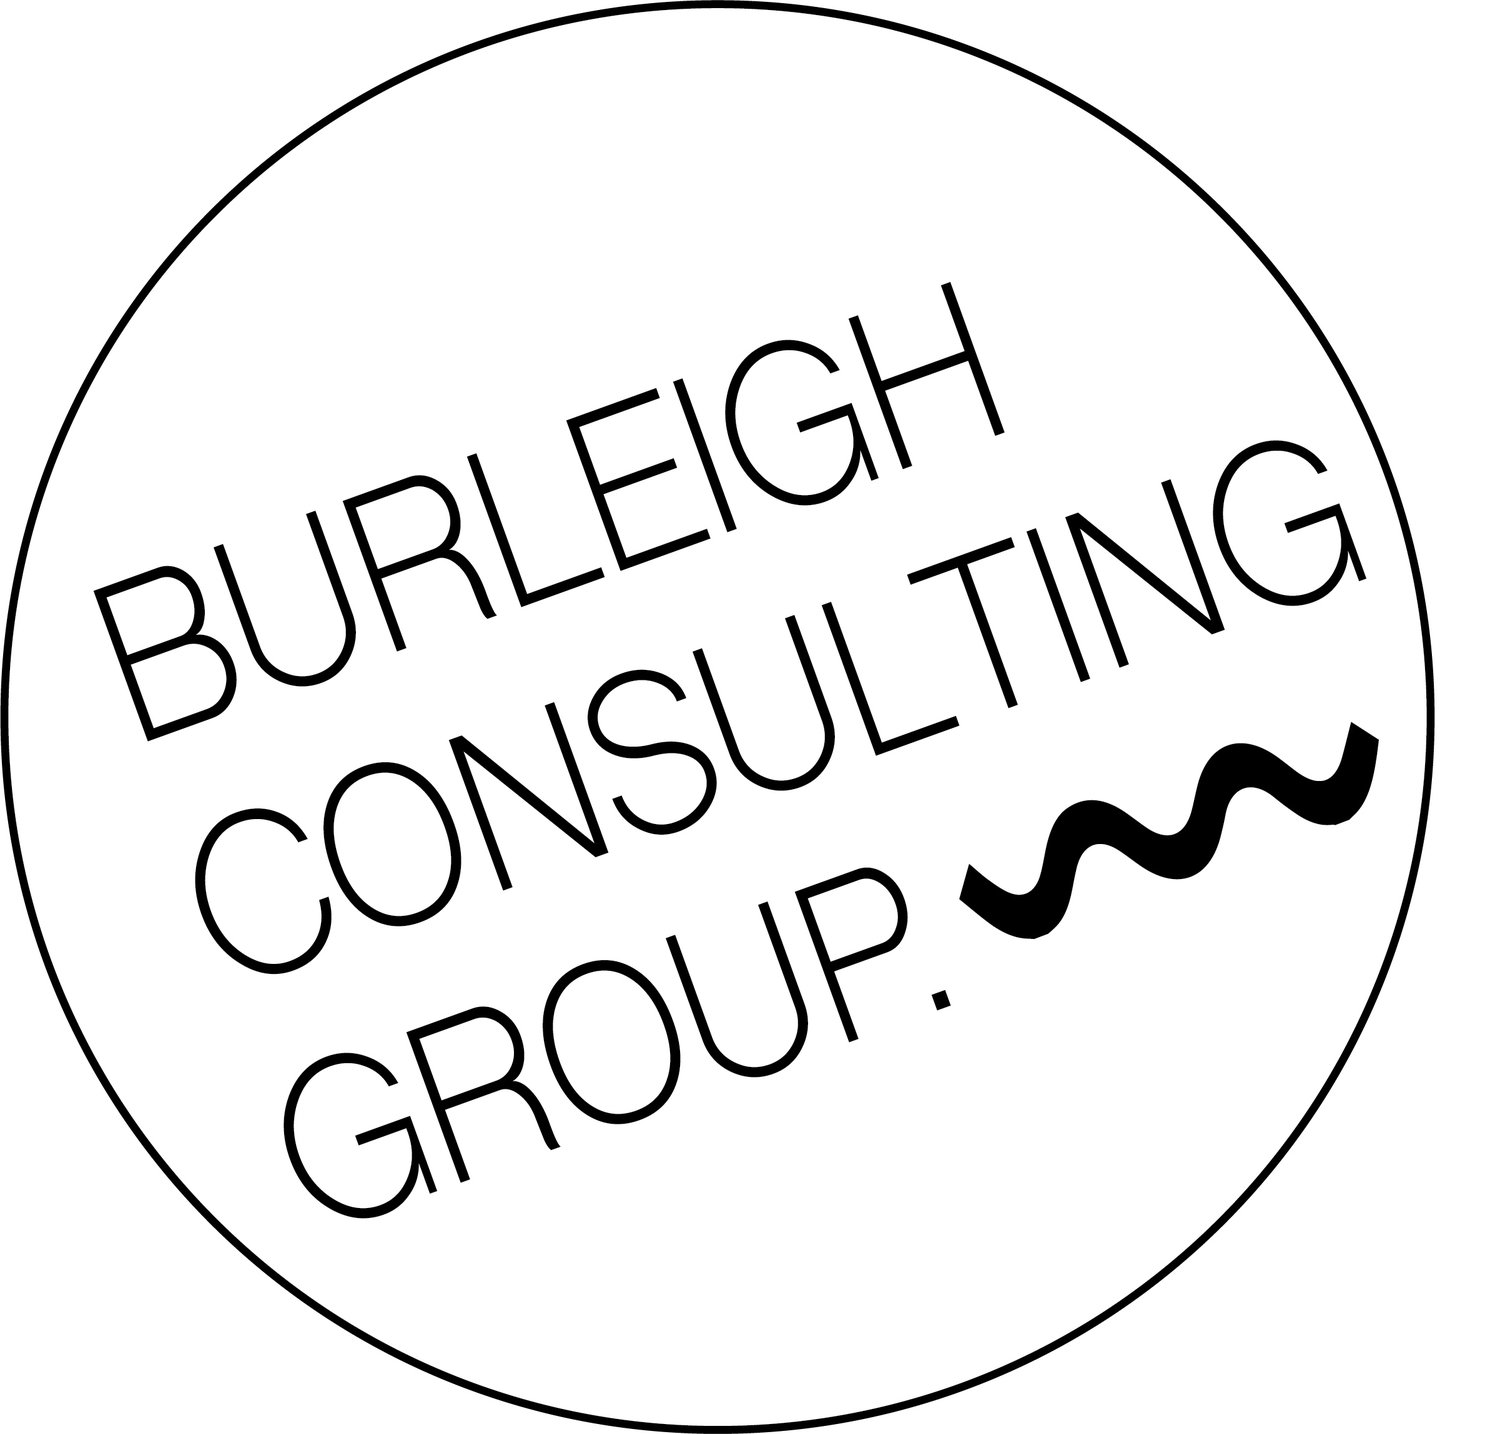 Burleigh Consulting Group